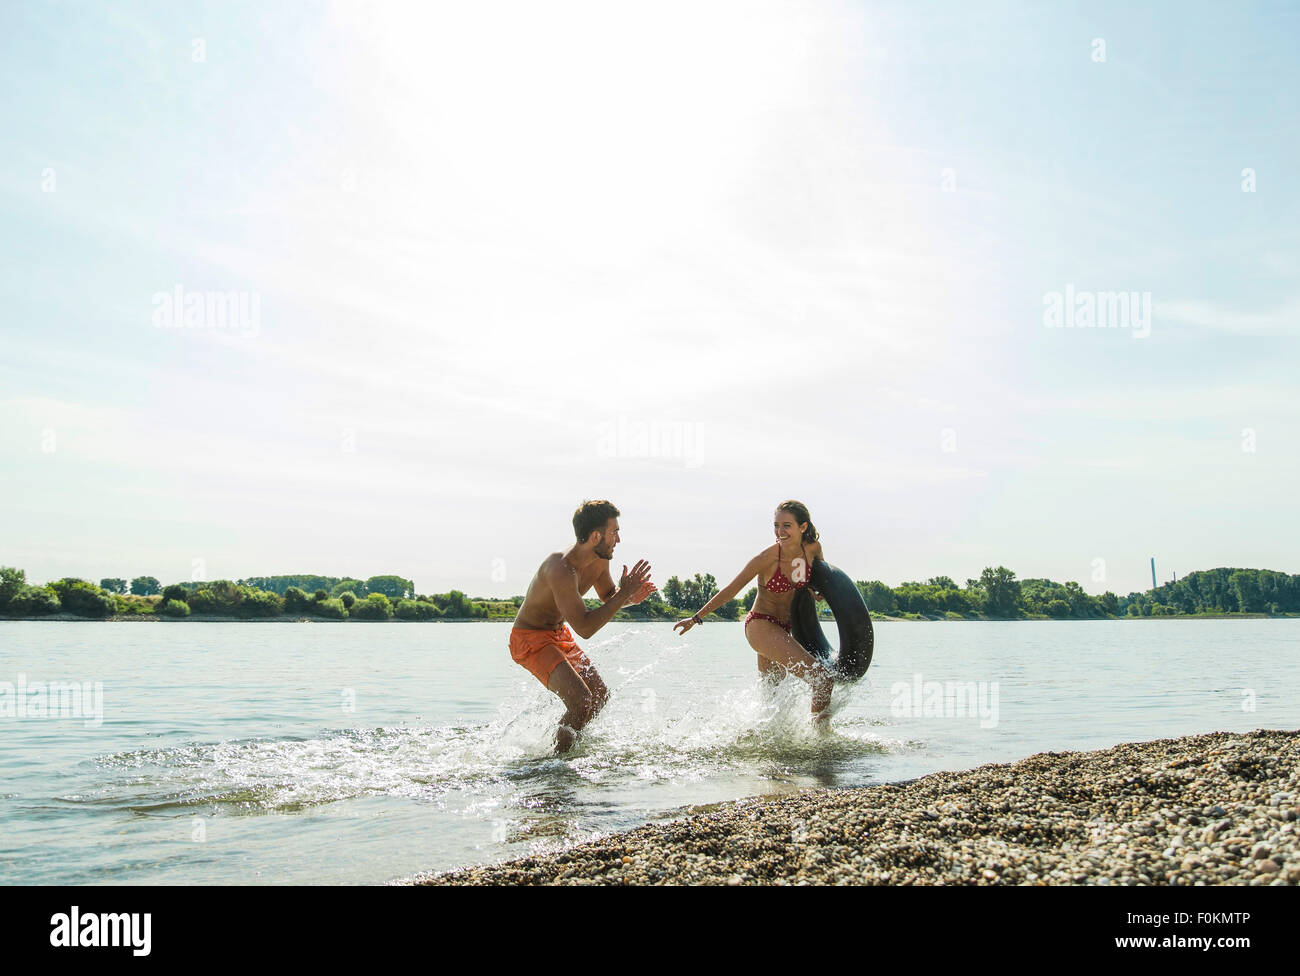 Playful young couple with inner tube in river - Stock Image